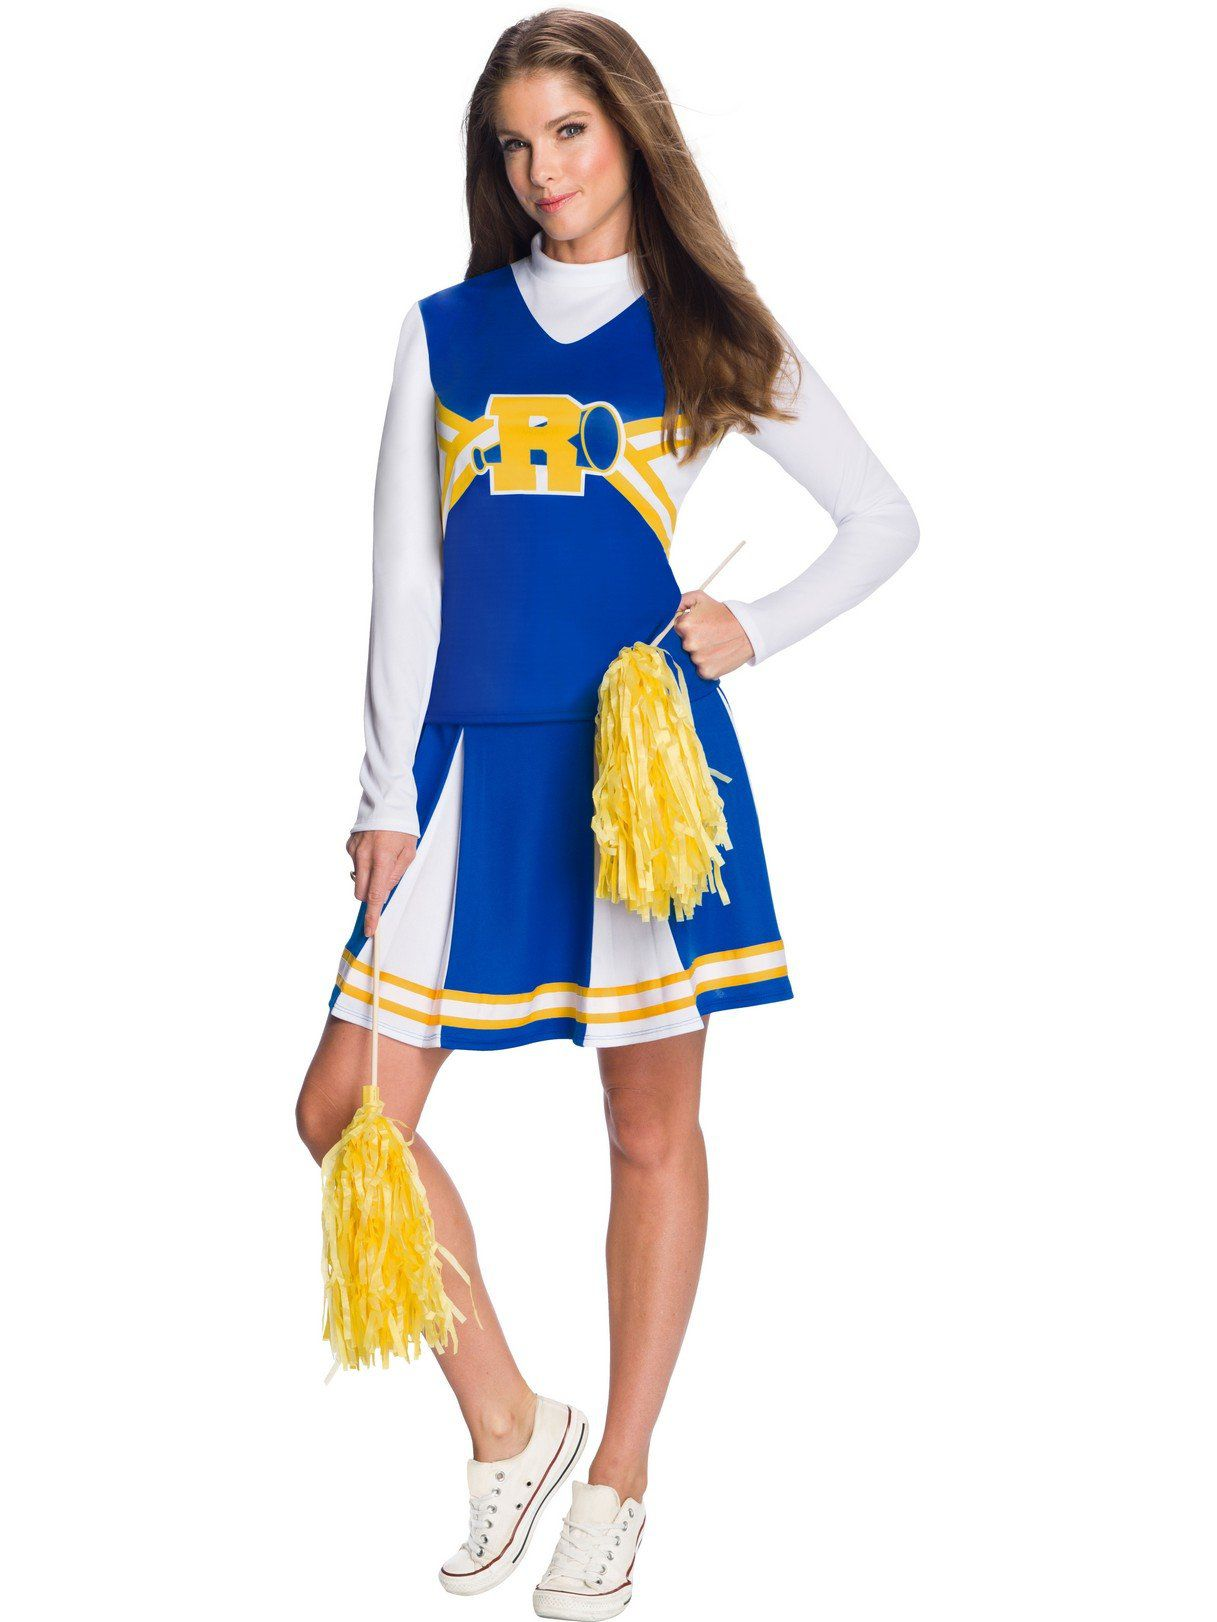 426d3becfa7 Riverdale Vixens Cheerleader Costume for Women - Womens Costumes for ...